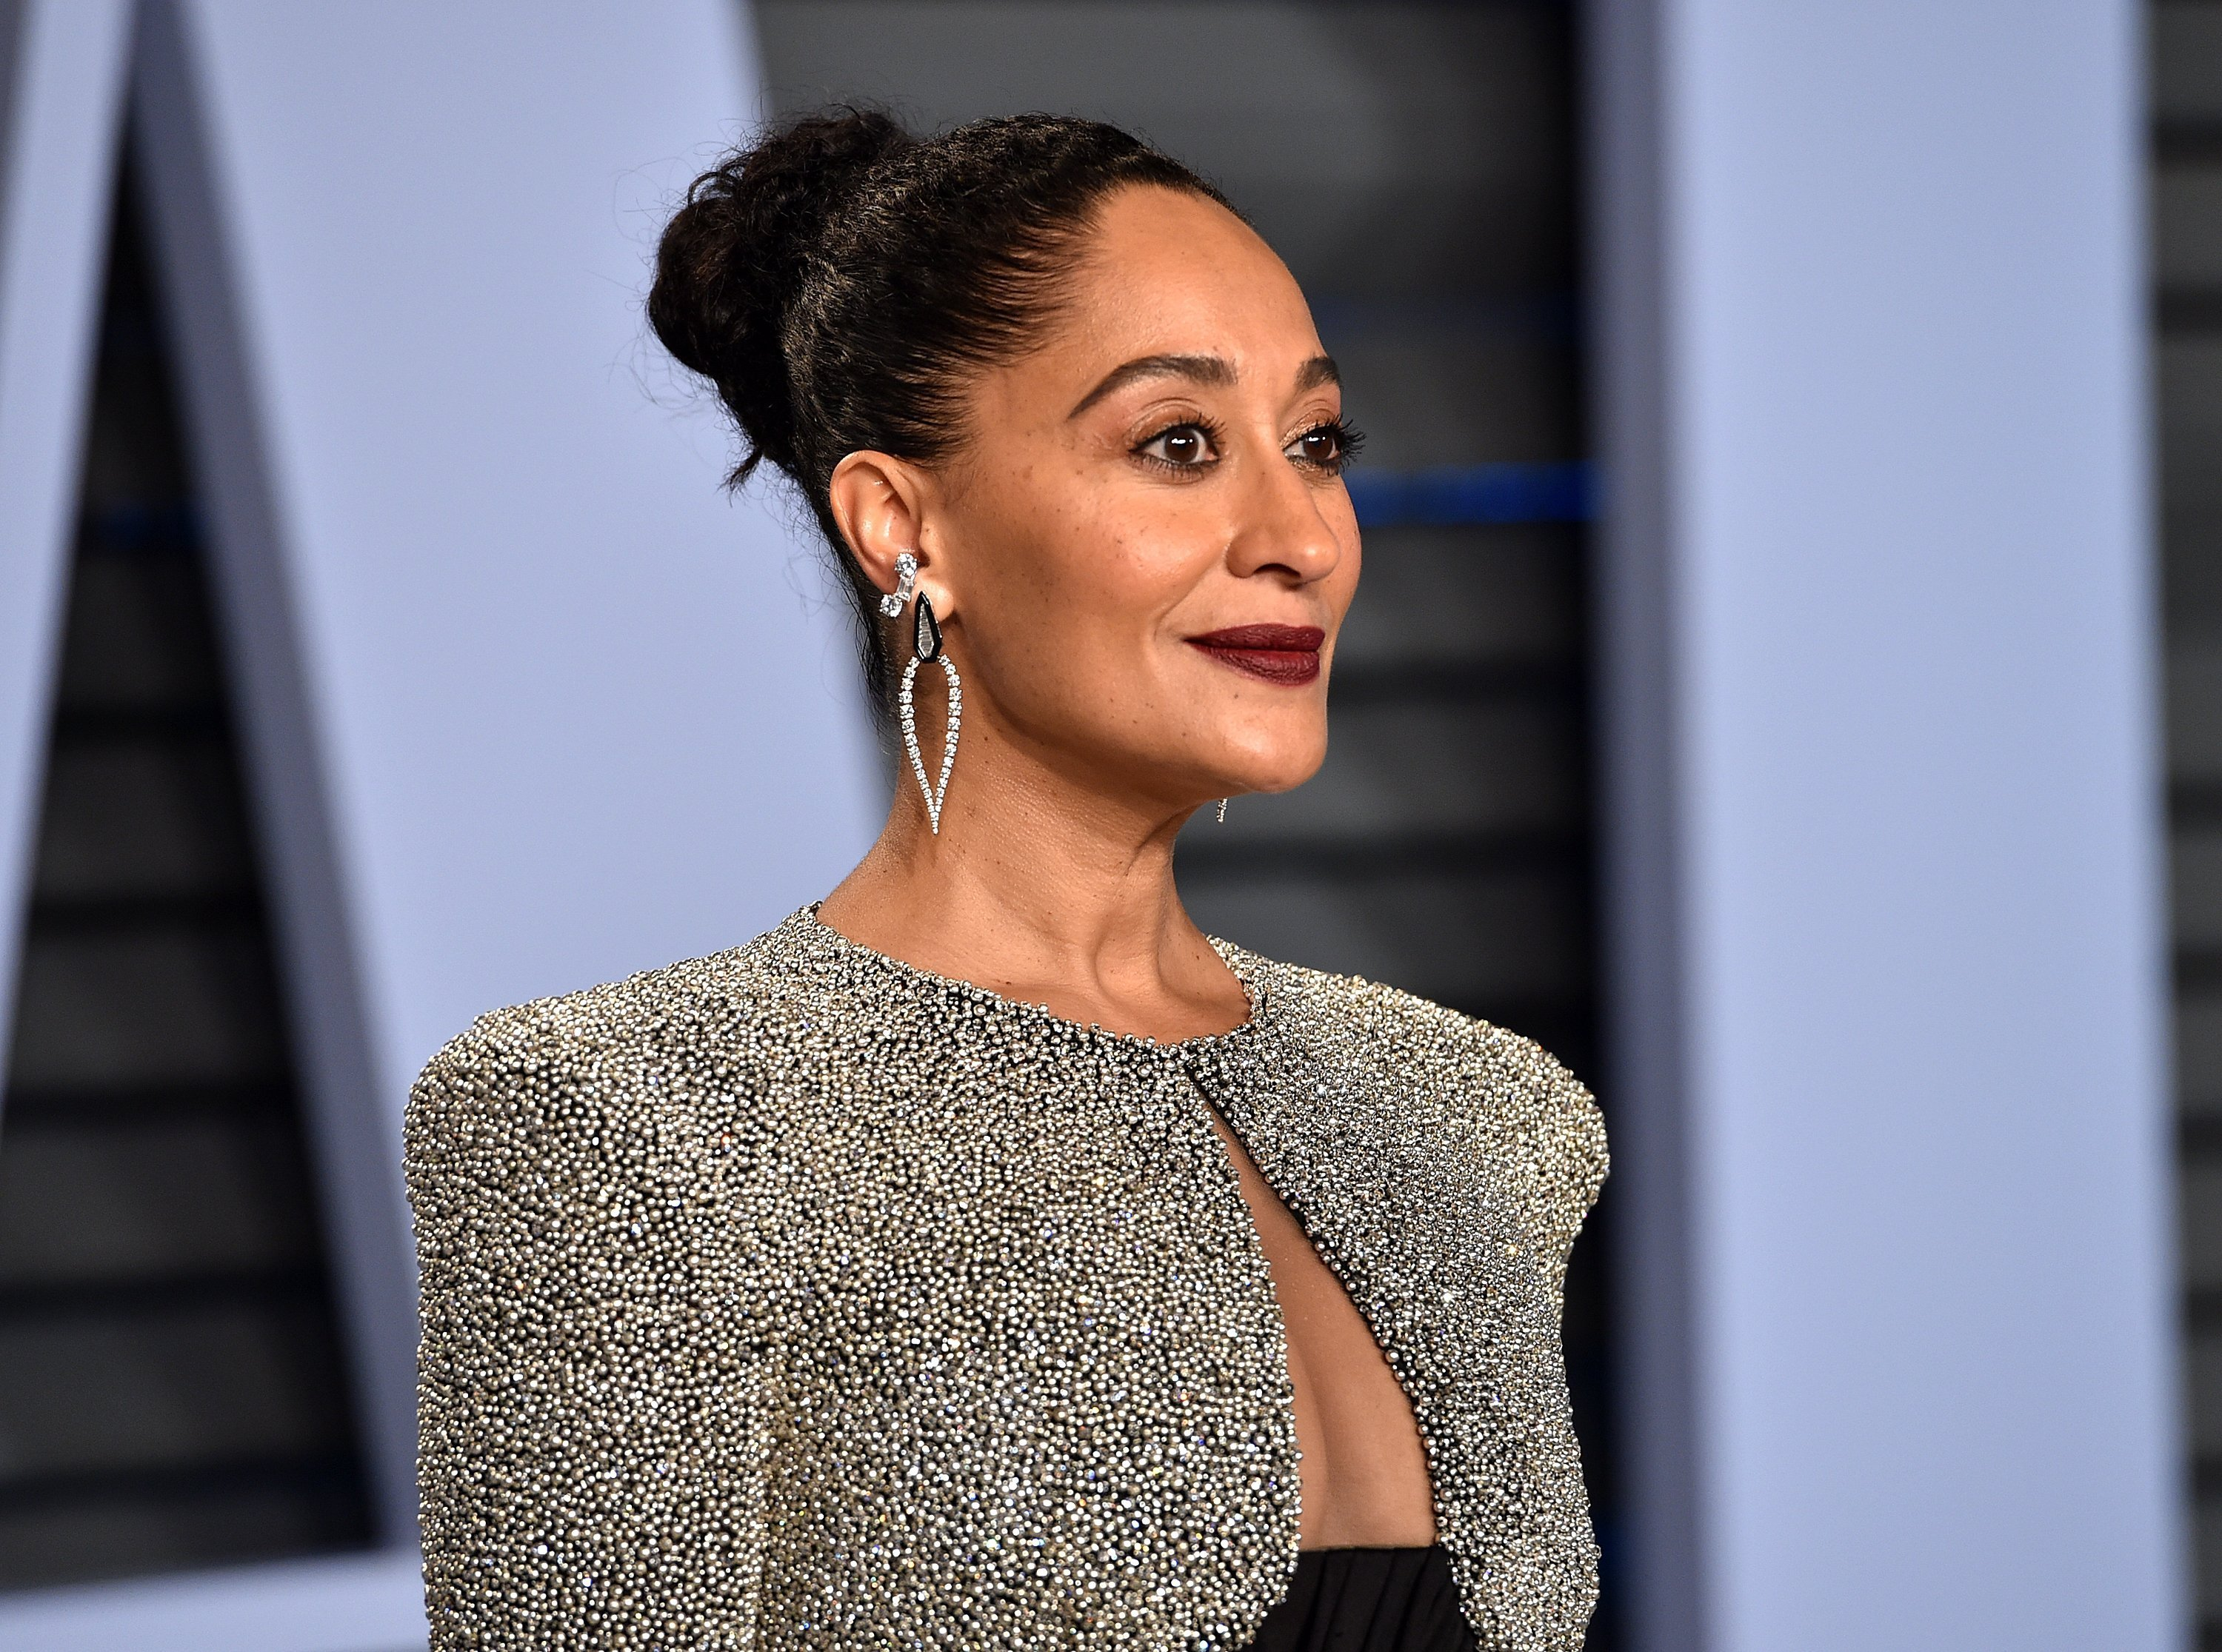 Tracee Ellis Ross at the Vanity Fair Oscar Party on Mar. 4, 2018 in Beverly Hills, California | Photo: Getty Images